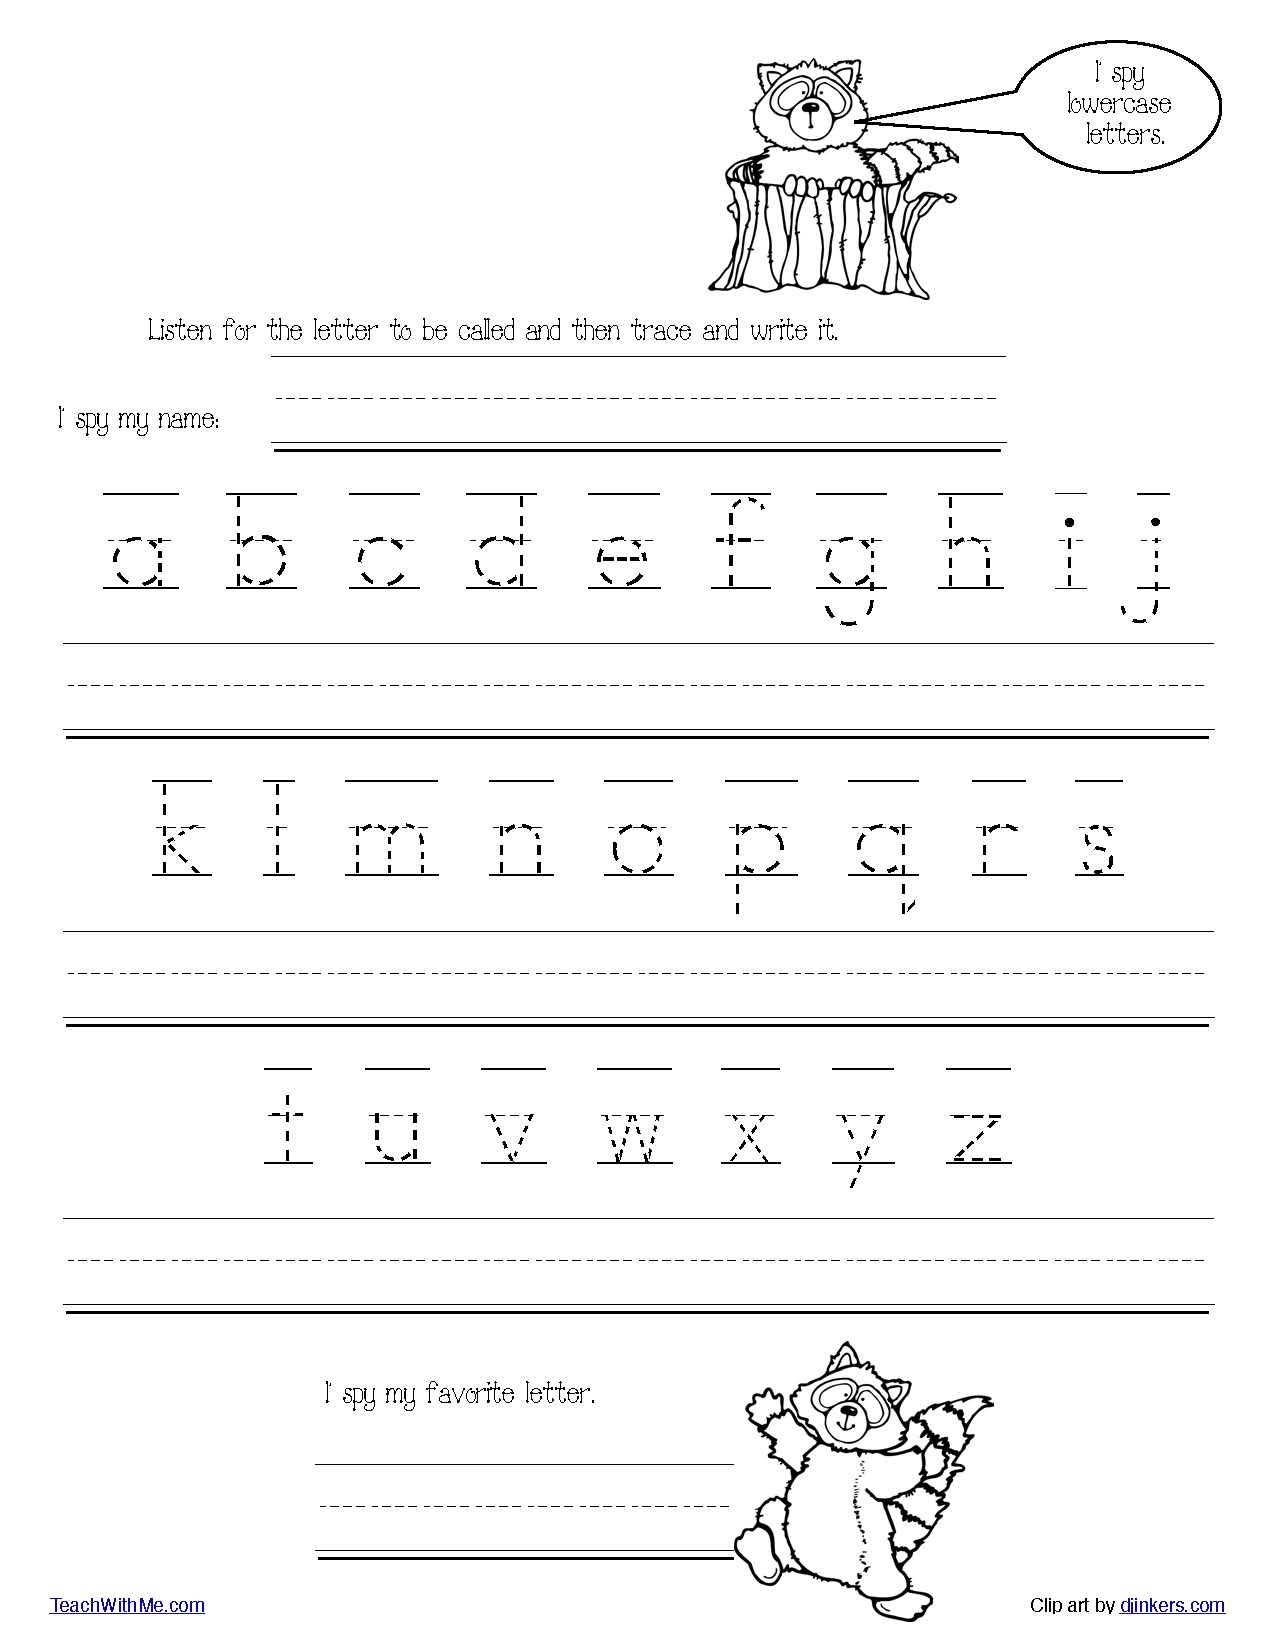 alphabet games, alphabet activities, alphabet cards, alphabet assessments, number cards, skip counting activities, counting booklet, shape activities, shape games, raccoon crafts